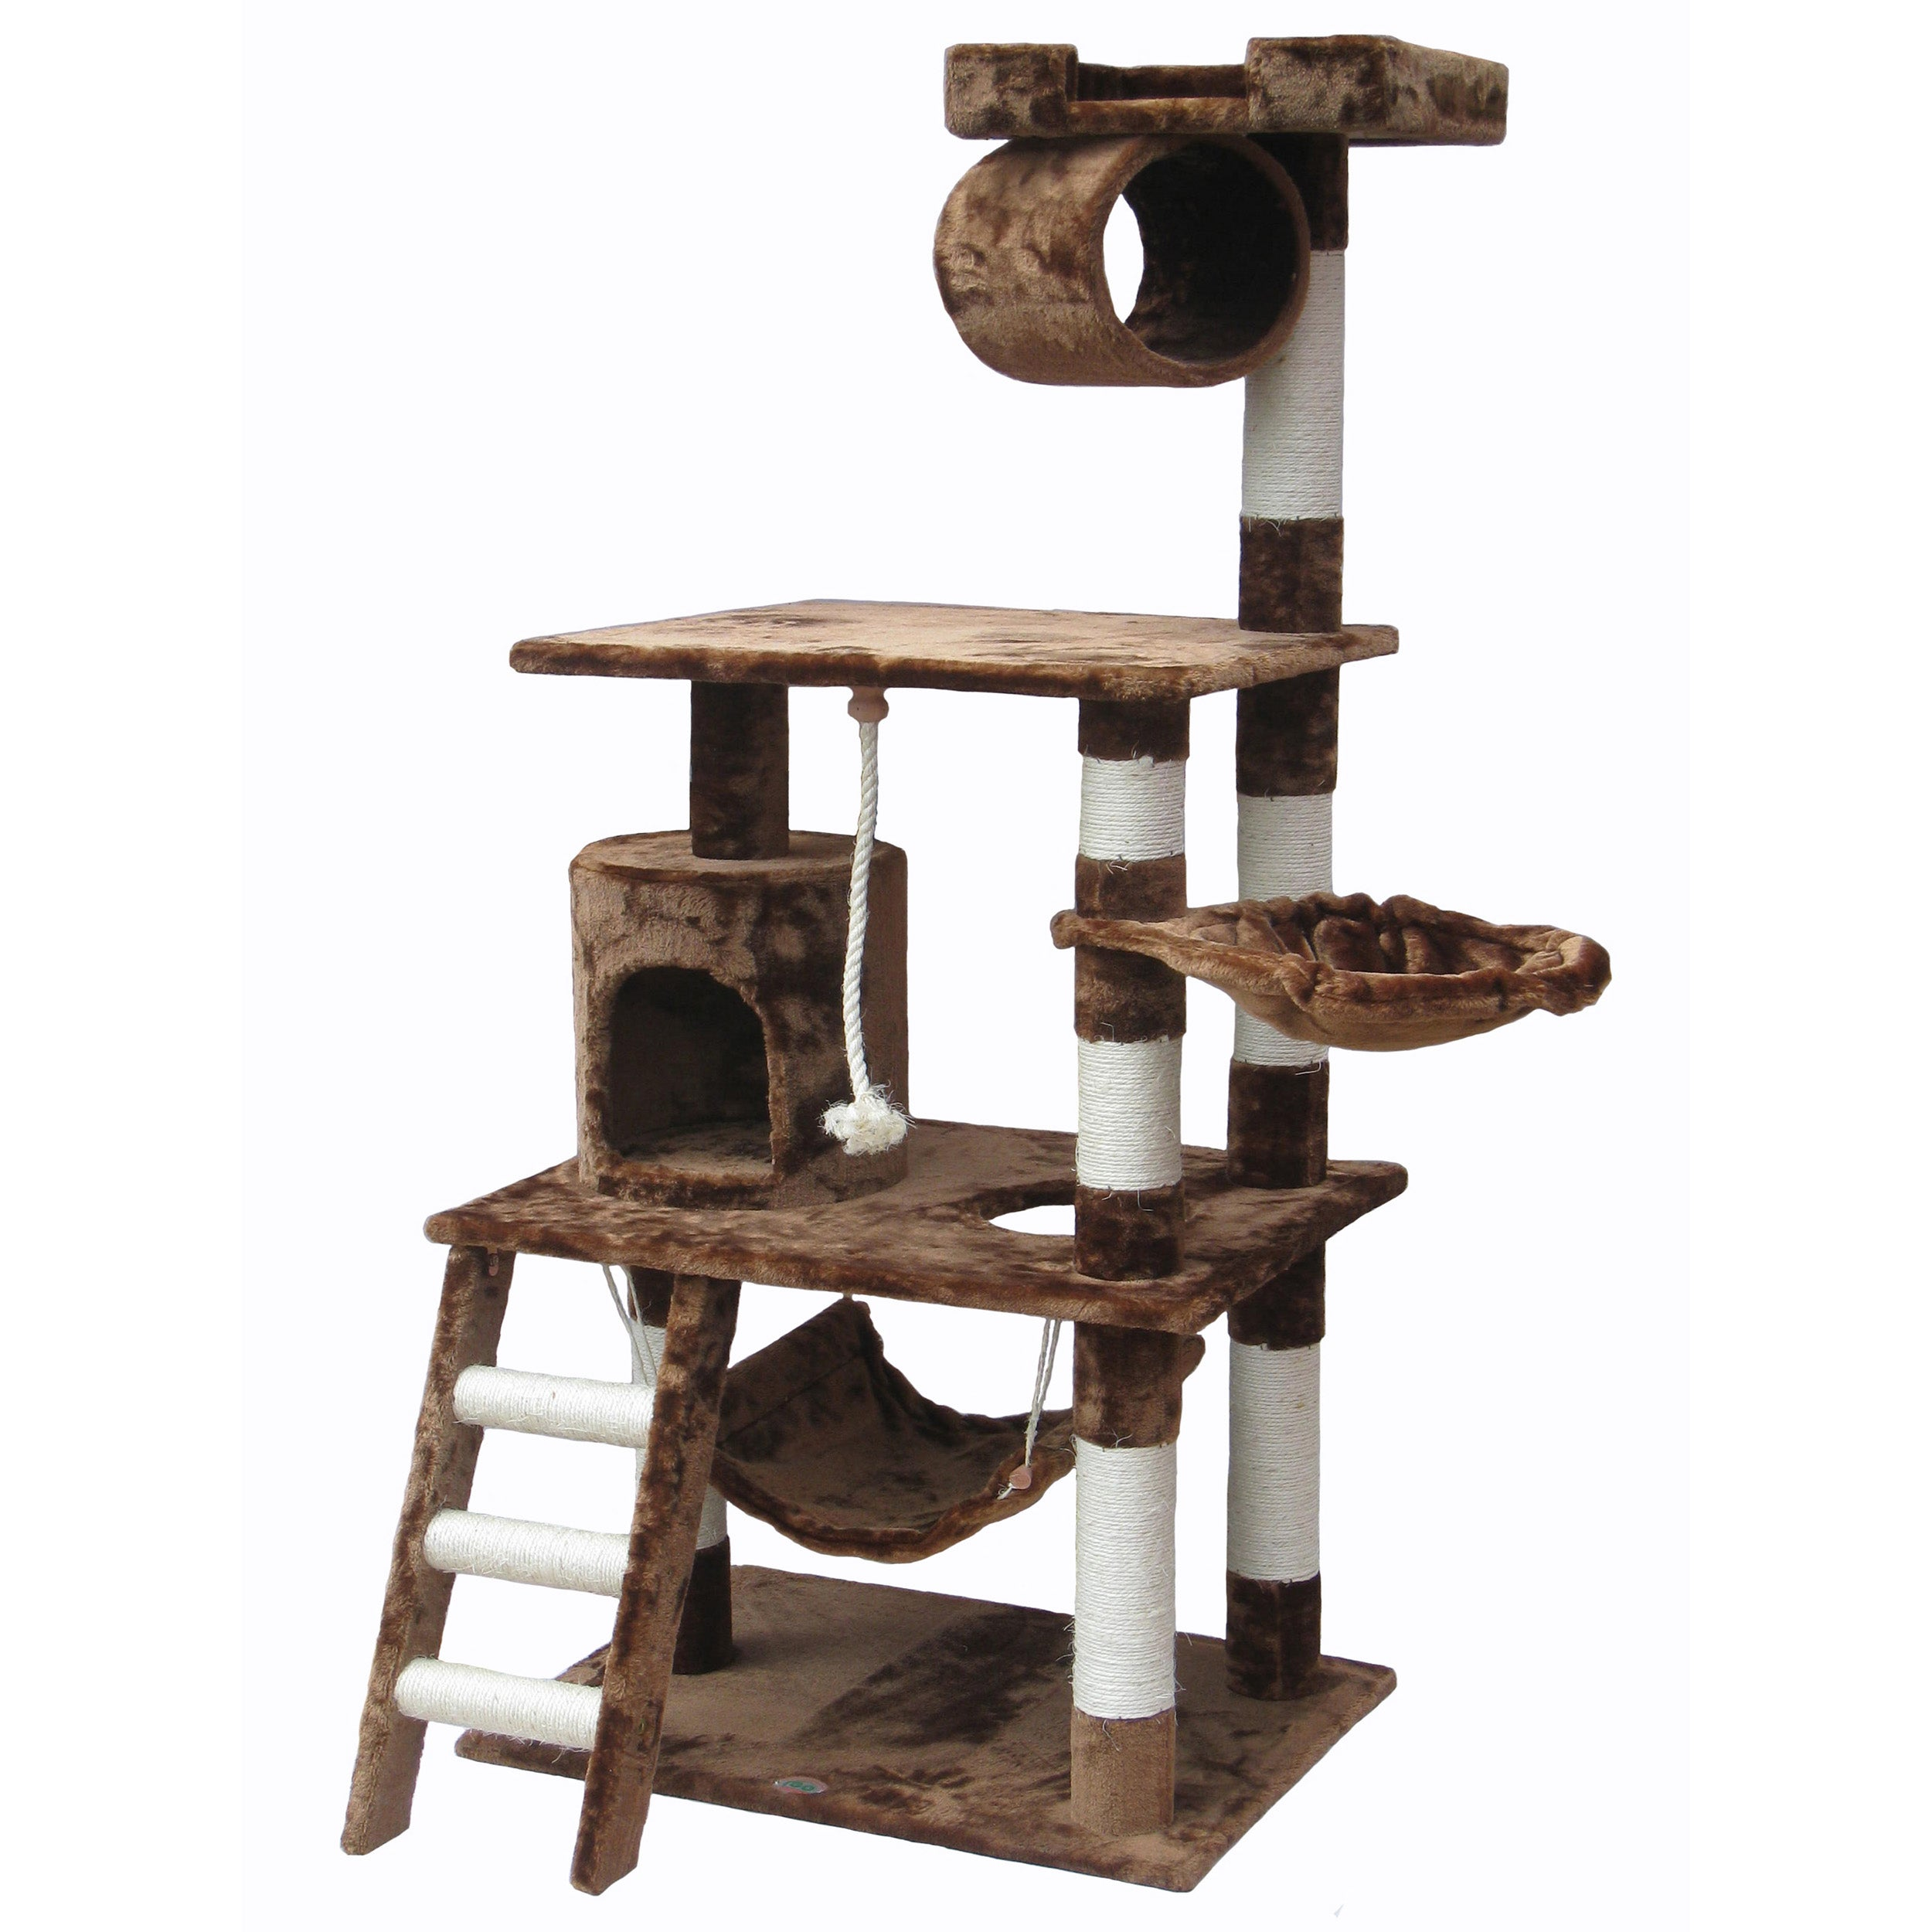 Multi level go pet club 62 inch cat tree 14281272 - Sofas para gatos ...